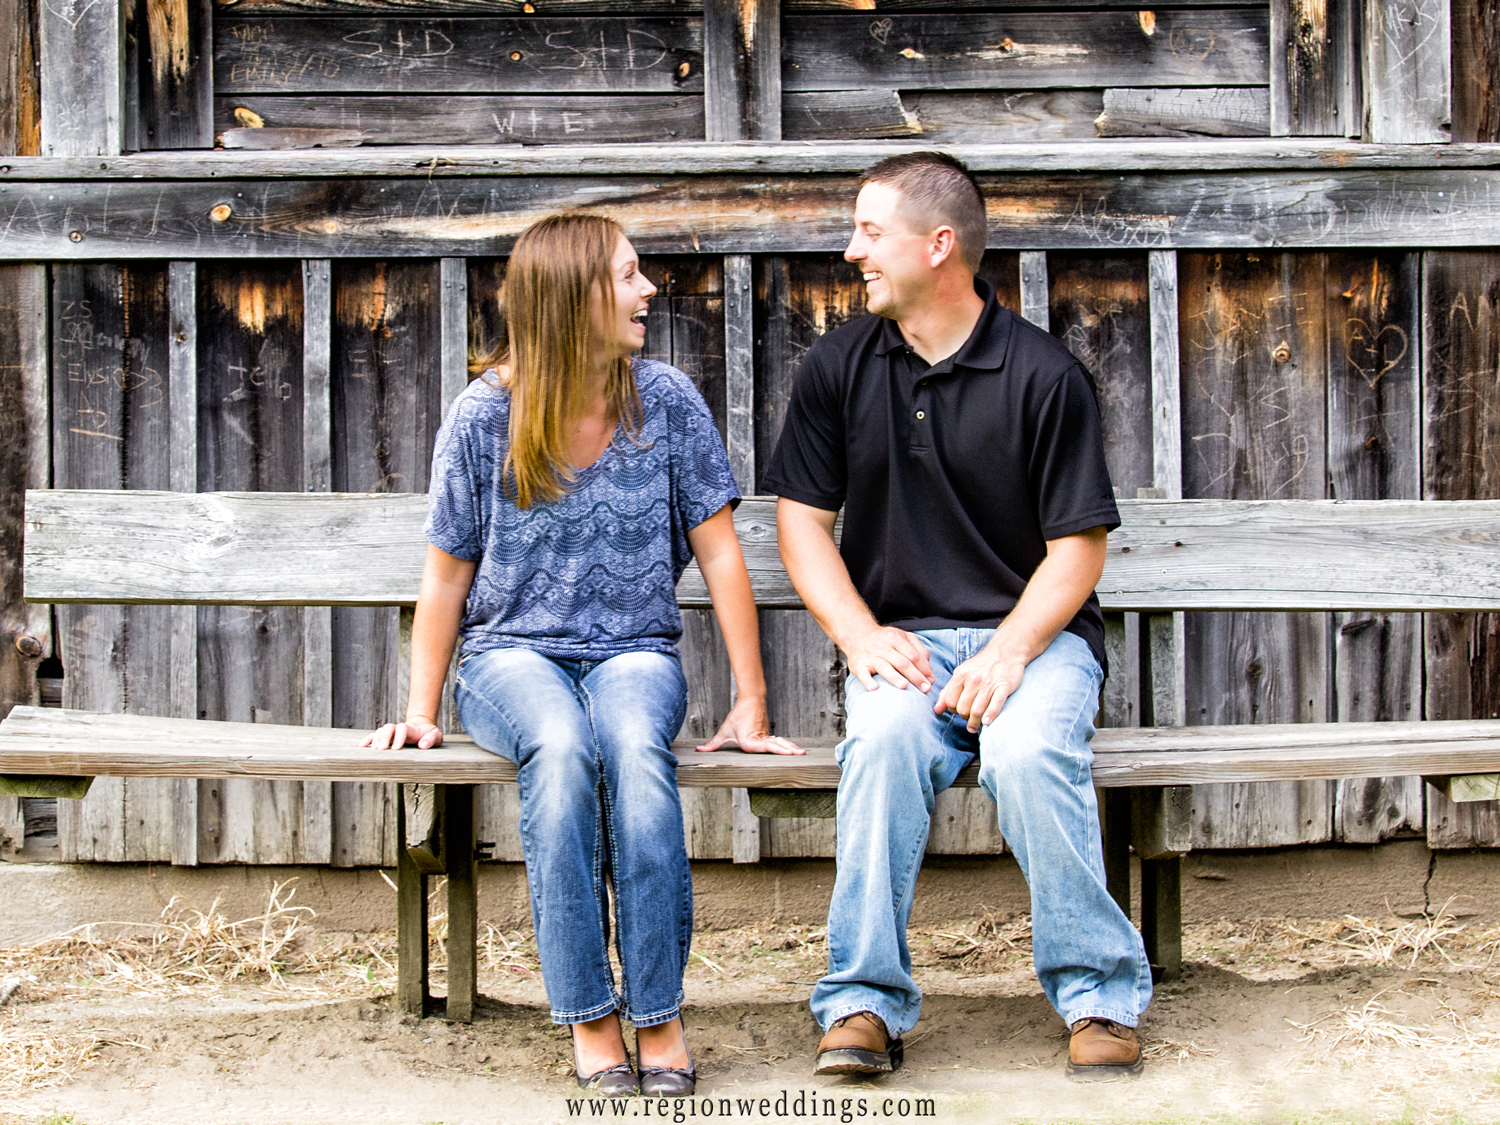 A candid engagement photo on the bench in front of the Sugar Shack in Deep River Park.